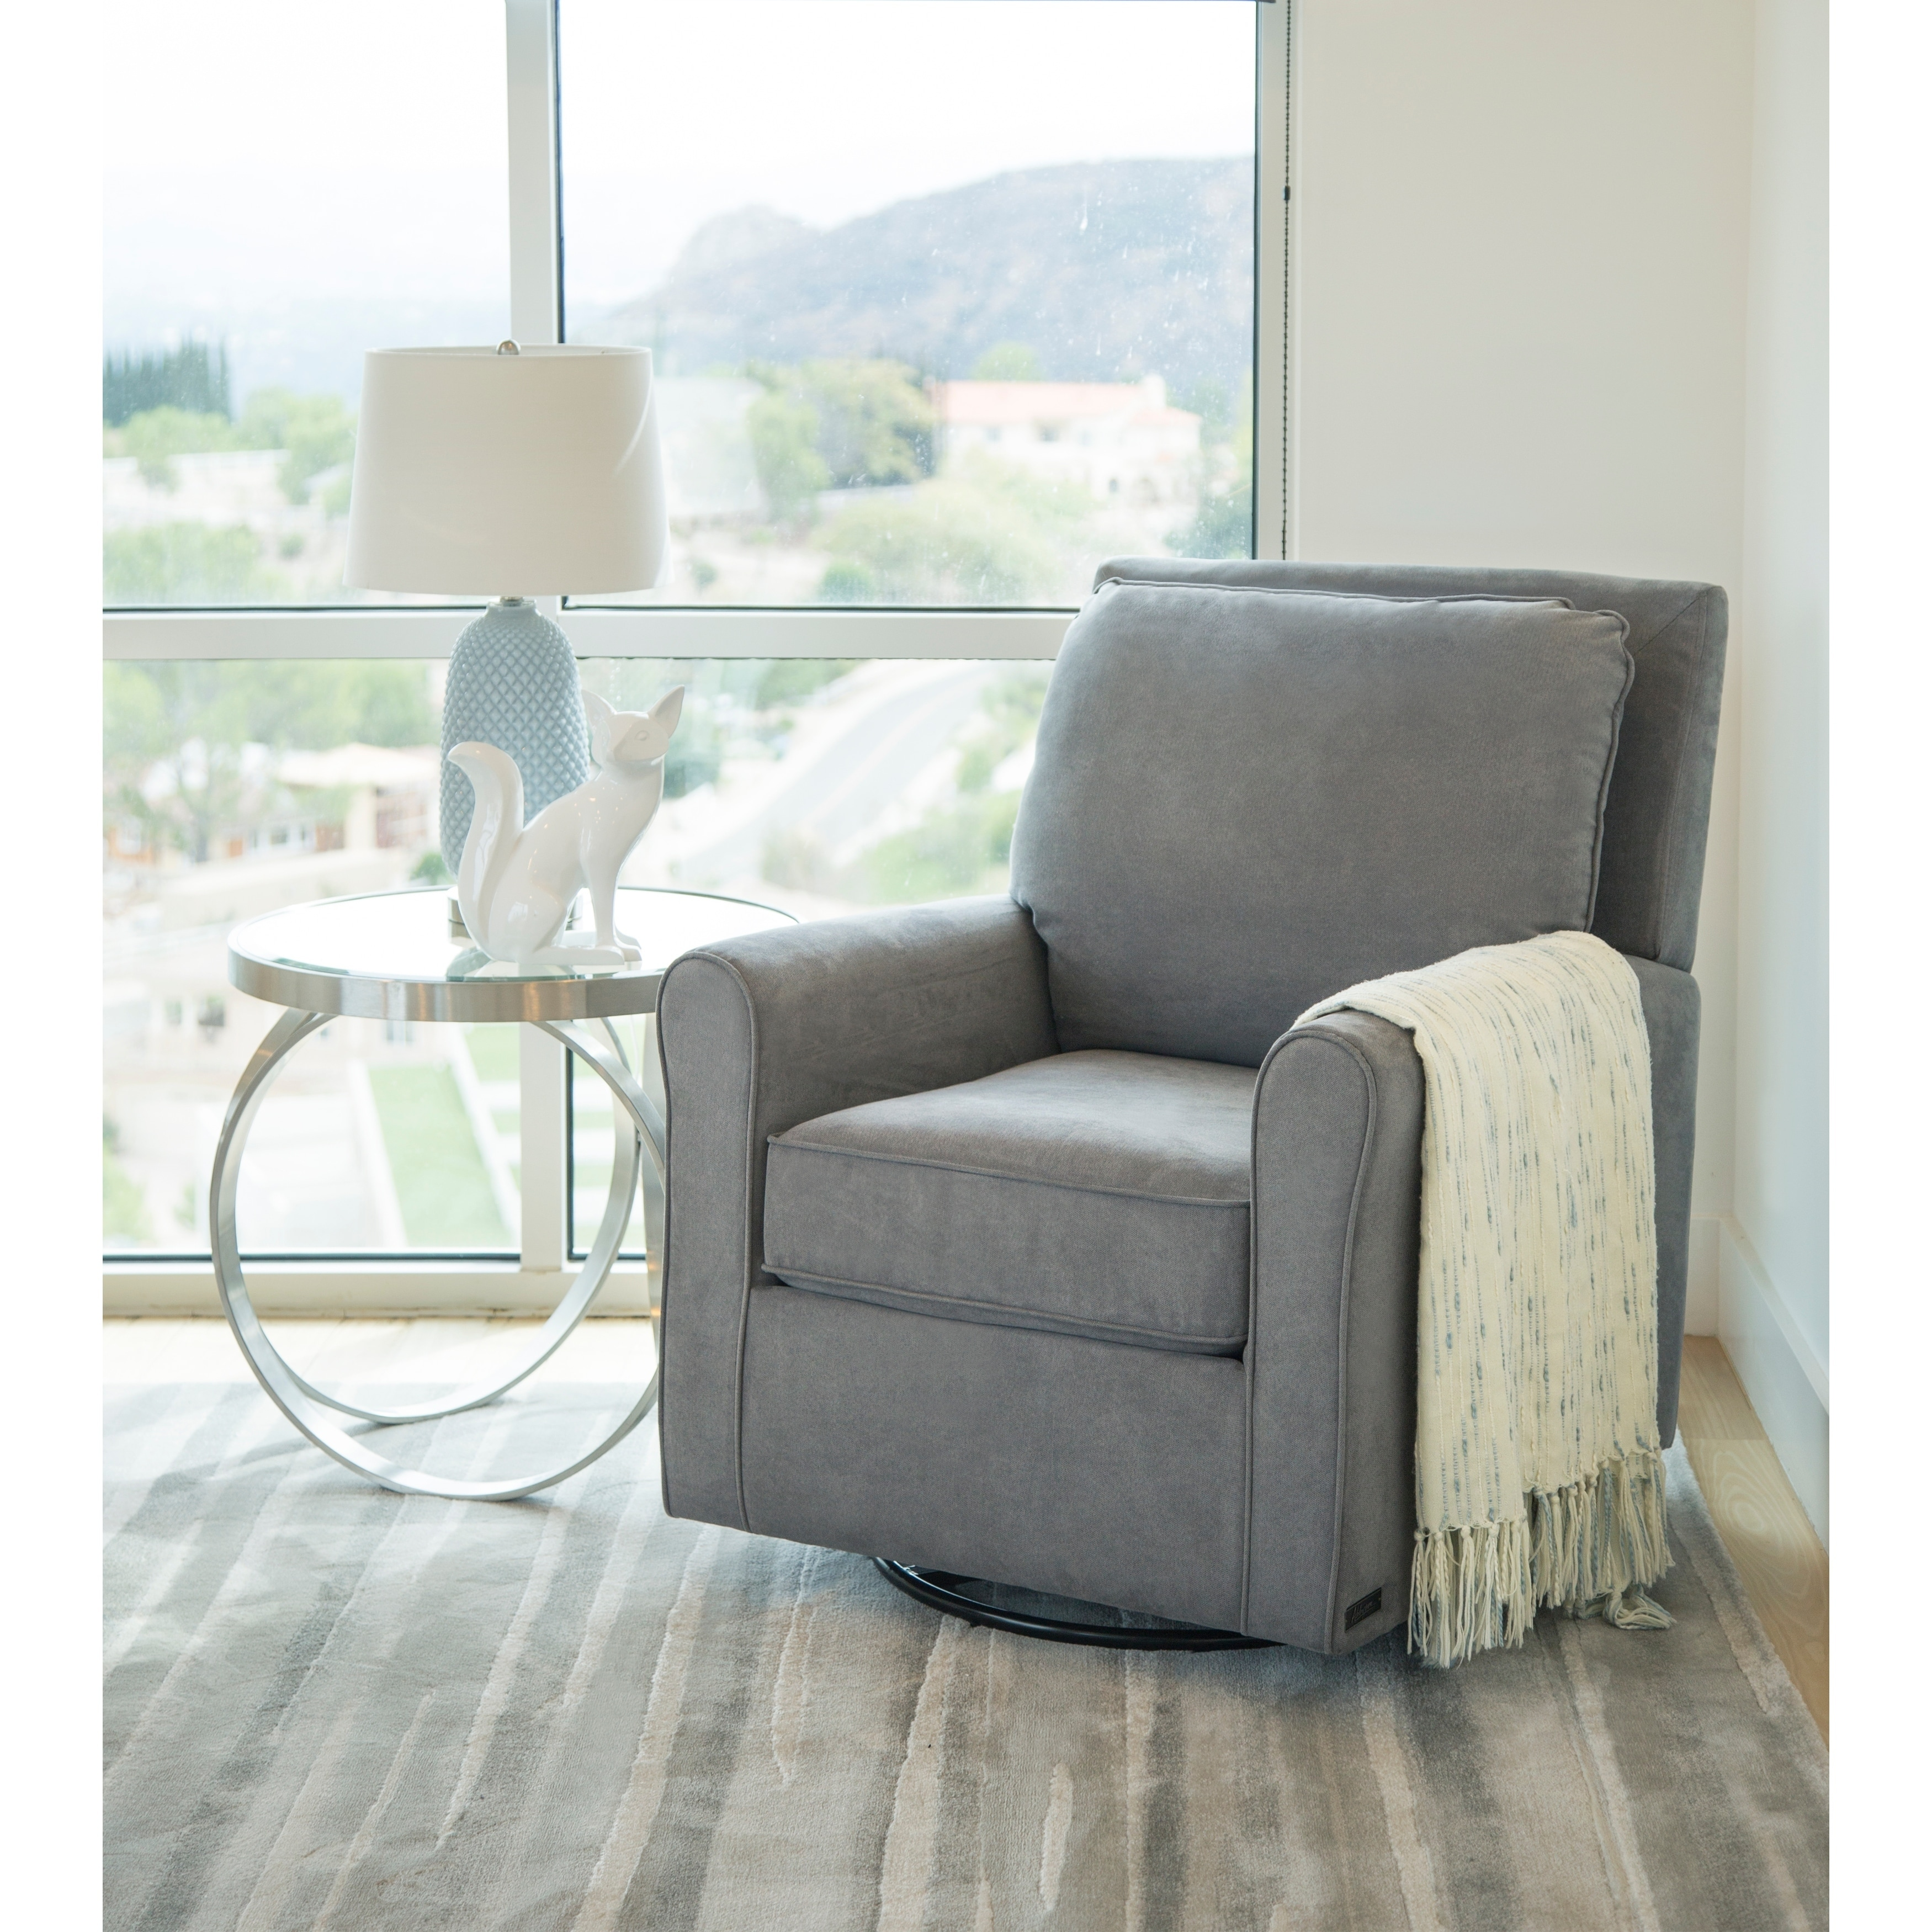 canada chairs ottoman oversized sofas overstock everythingbeauty walmart slipcover ottomans and uk chair armchair amazon overd melbourne info